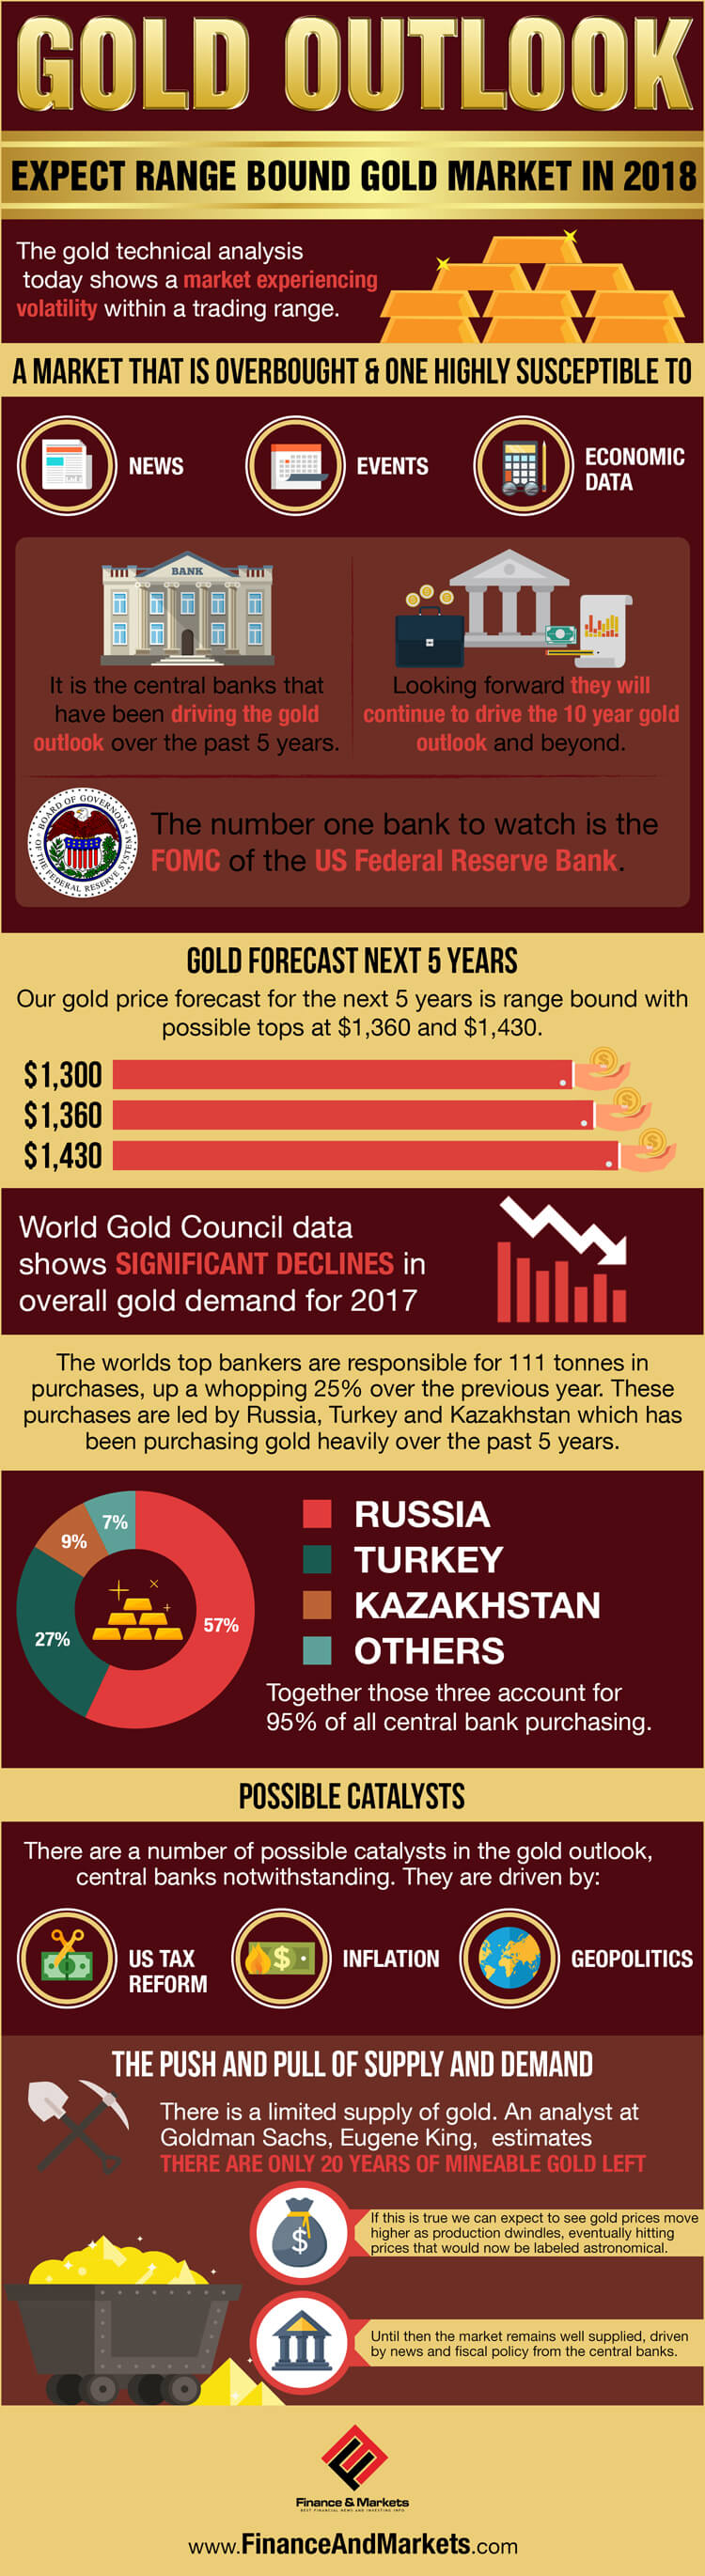 5 Minute Gold Forecast for 5 years